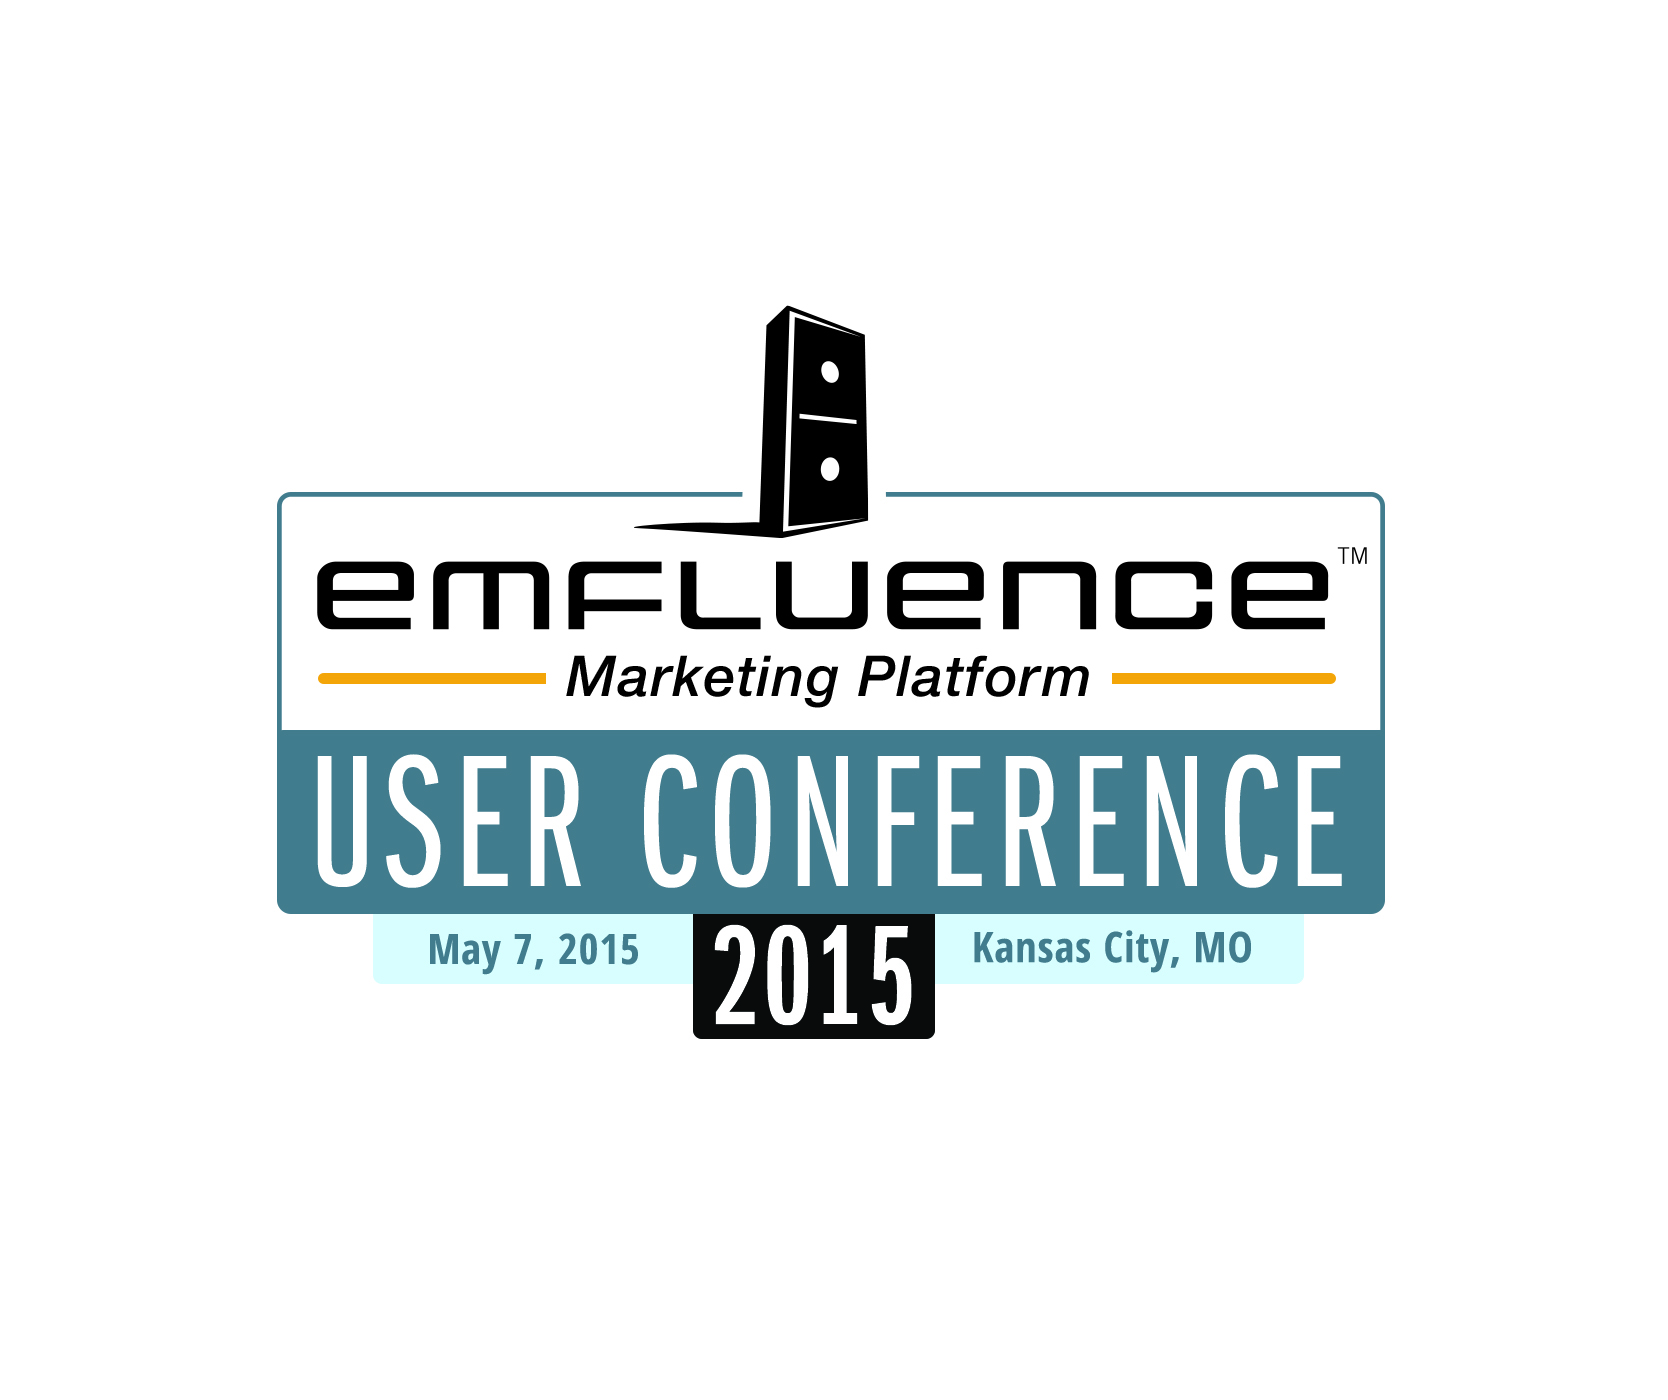 Graphic from Emfluence marketing platform user conference May 7, 2015 Kansas City MO.